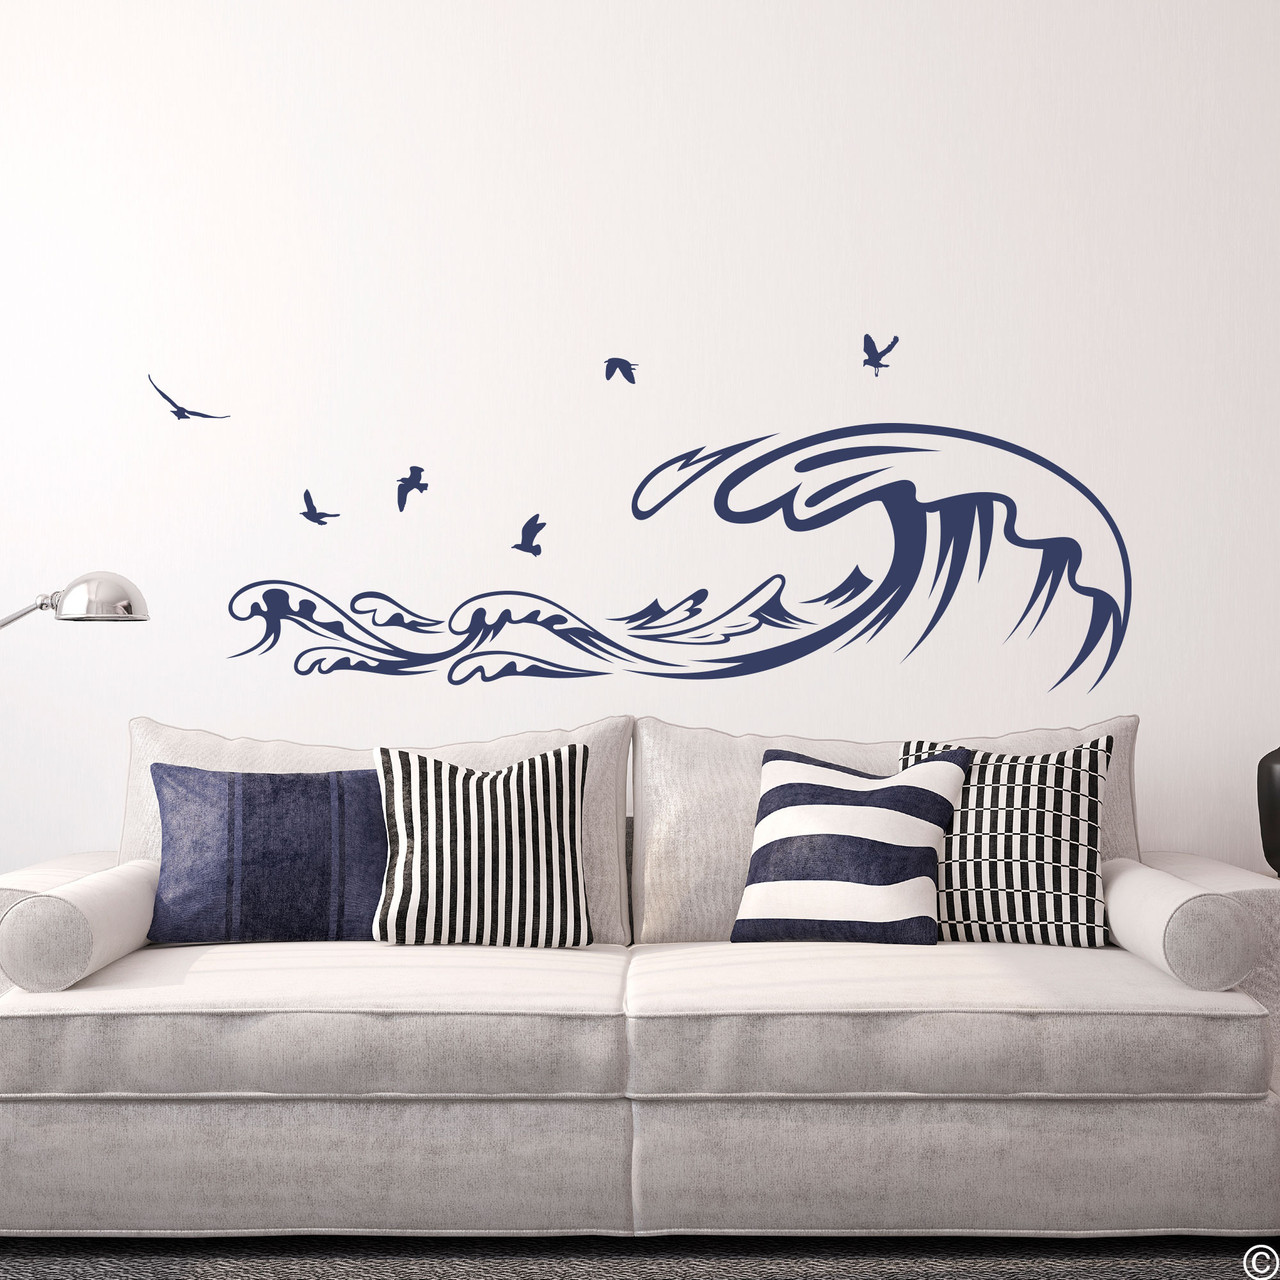 The Waves and Seagulls wall decal shown here in the dark blue vinyl color.